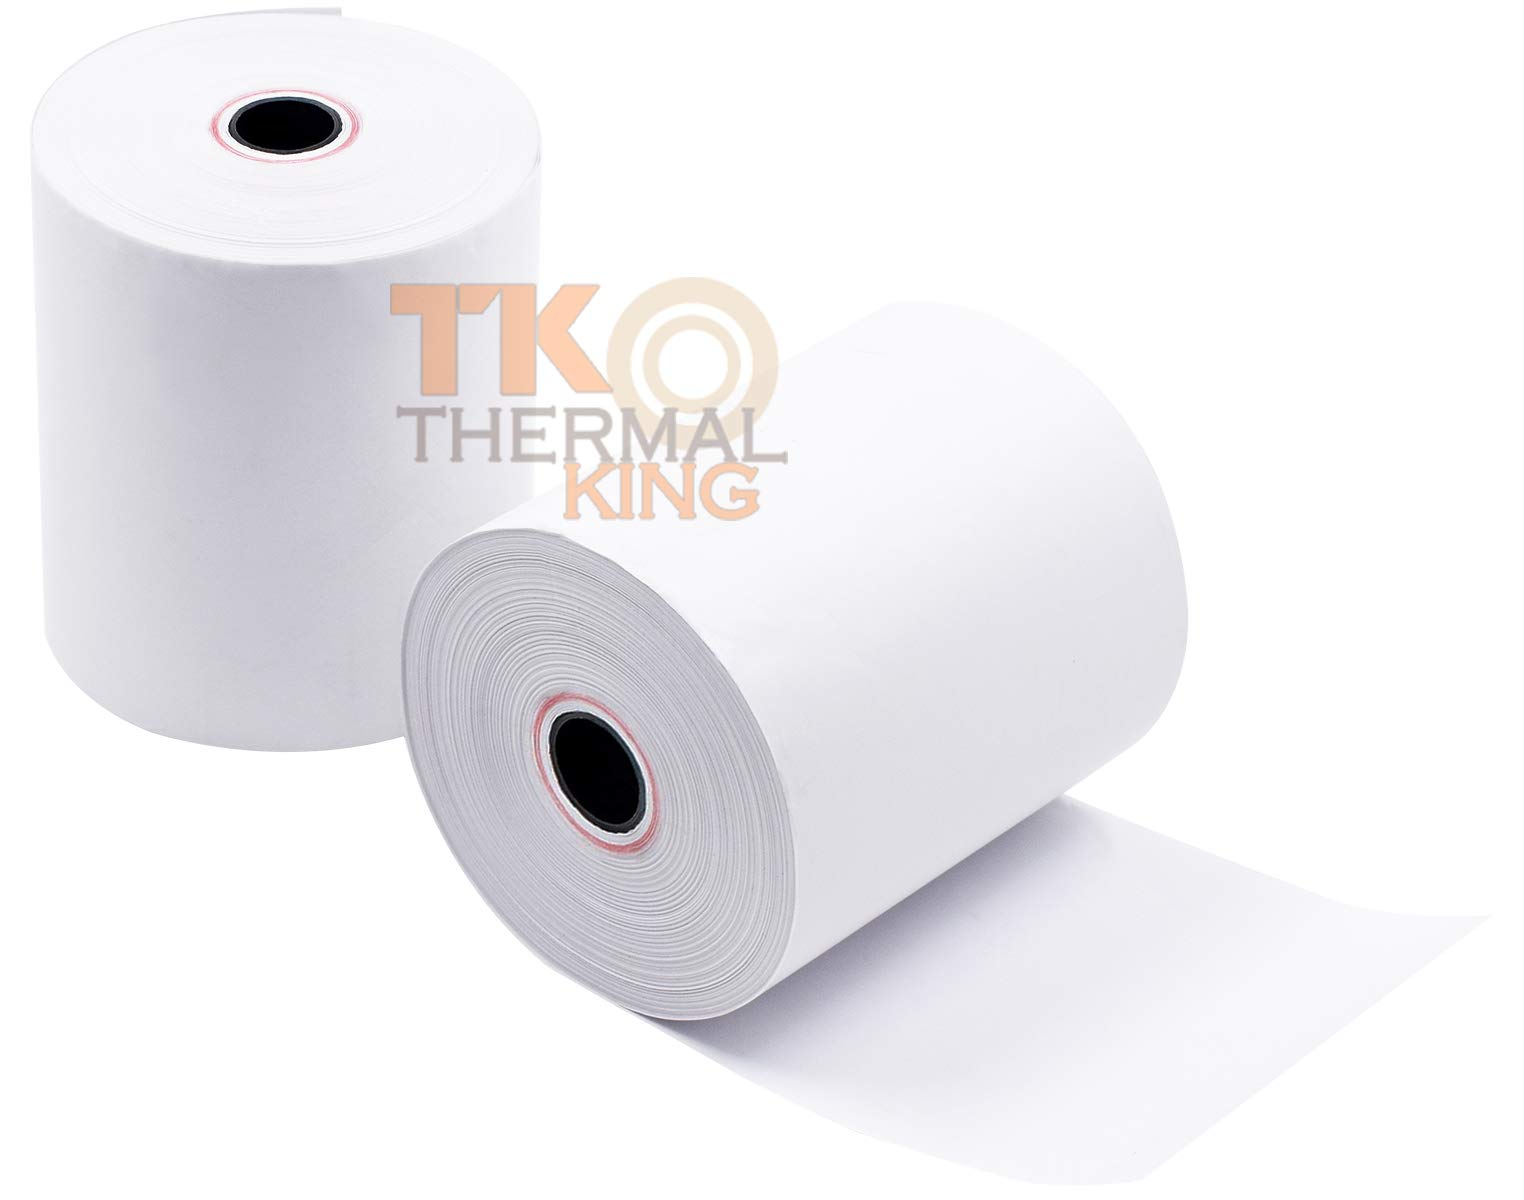 Thermal King, 3 1/8'' x 230' 30 Rolls Point-of-Sale Cash Register Thermal Paper Rolls, CT-S300 by Thermal King